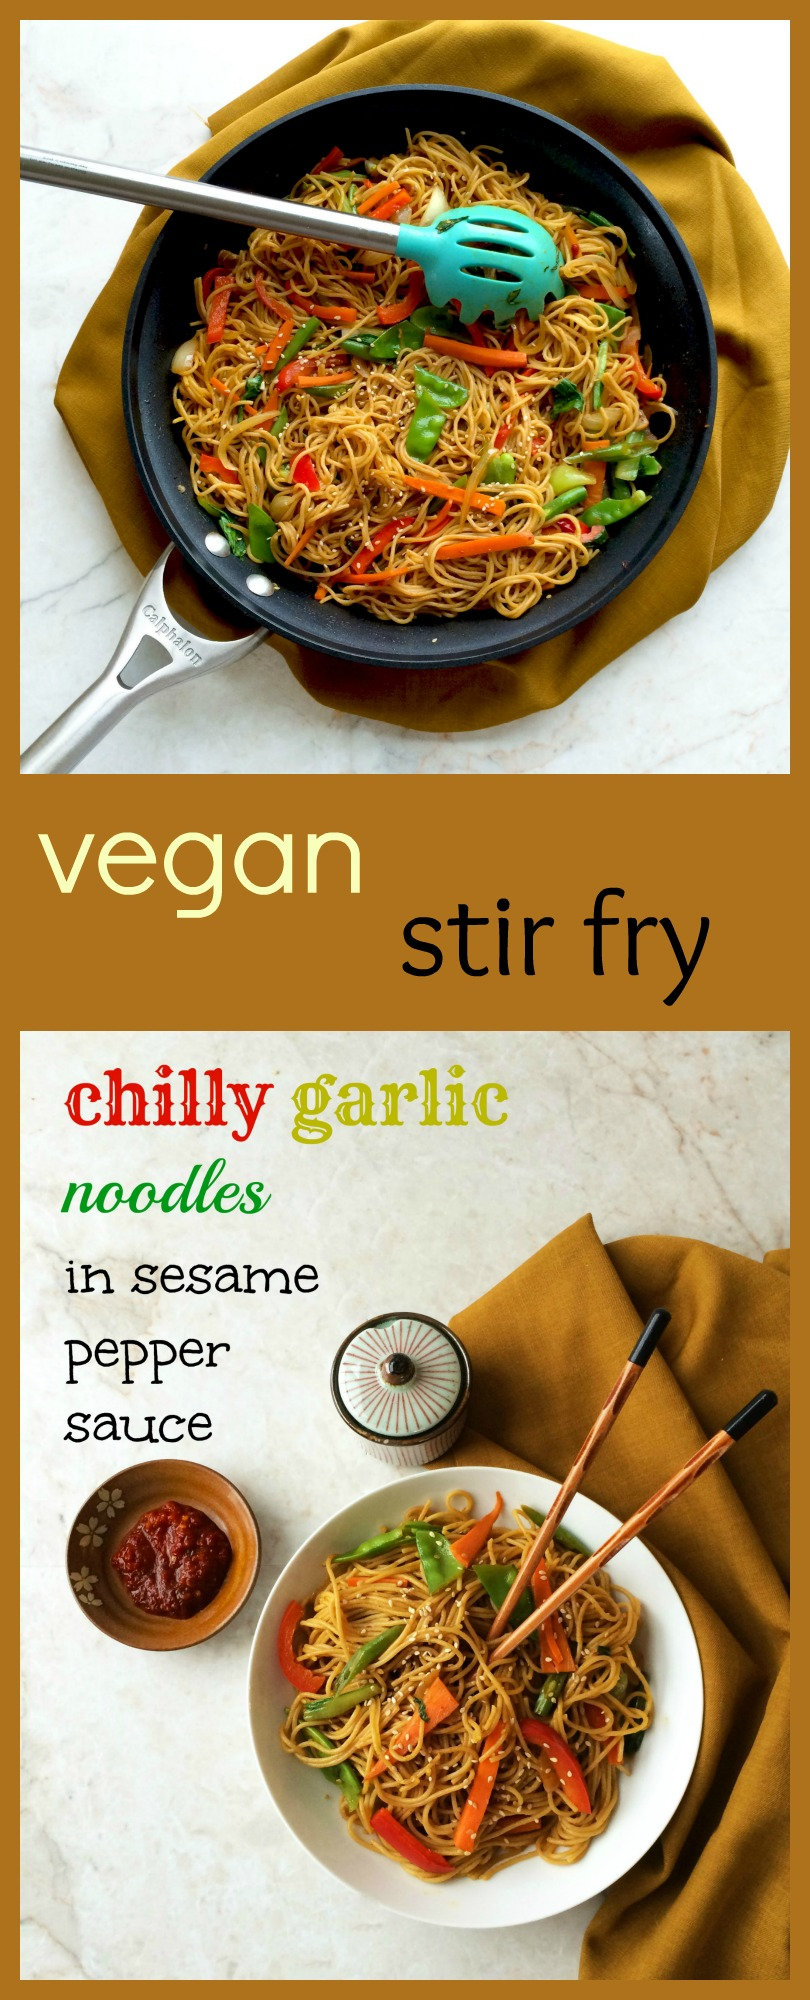 vegan stir fry noodles in sesame pepper sauce